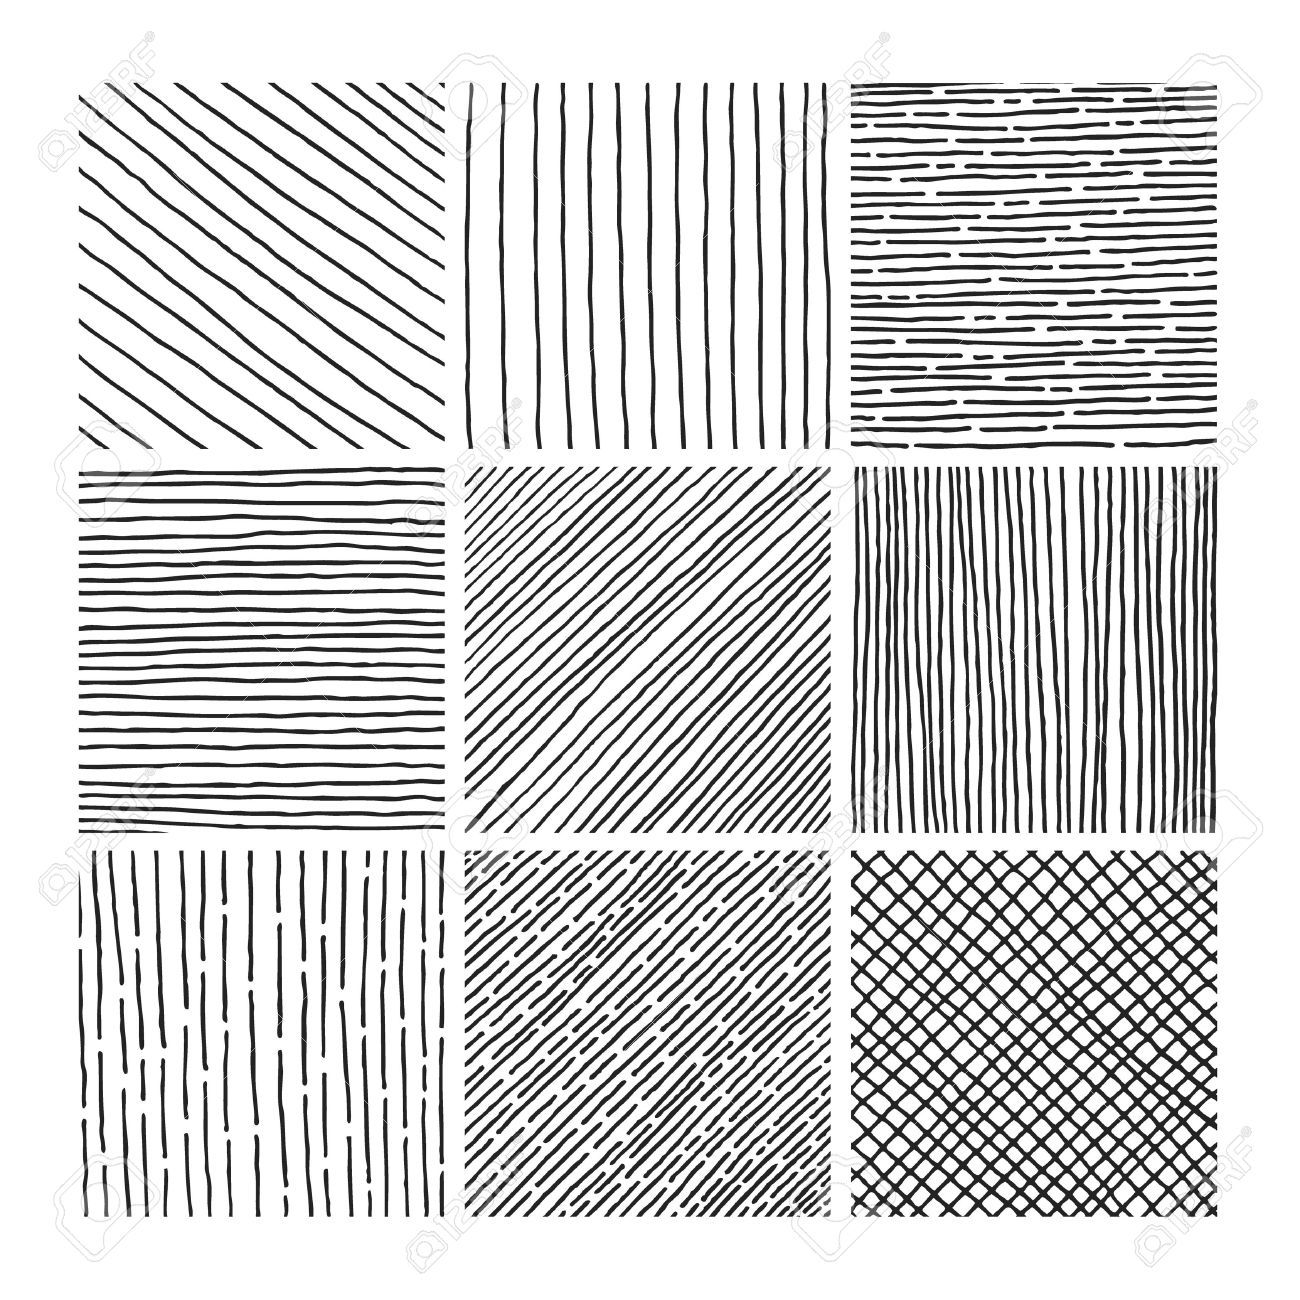 Drawing Lines With Pencil : Http previews rf images tatishdesign